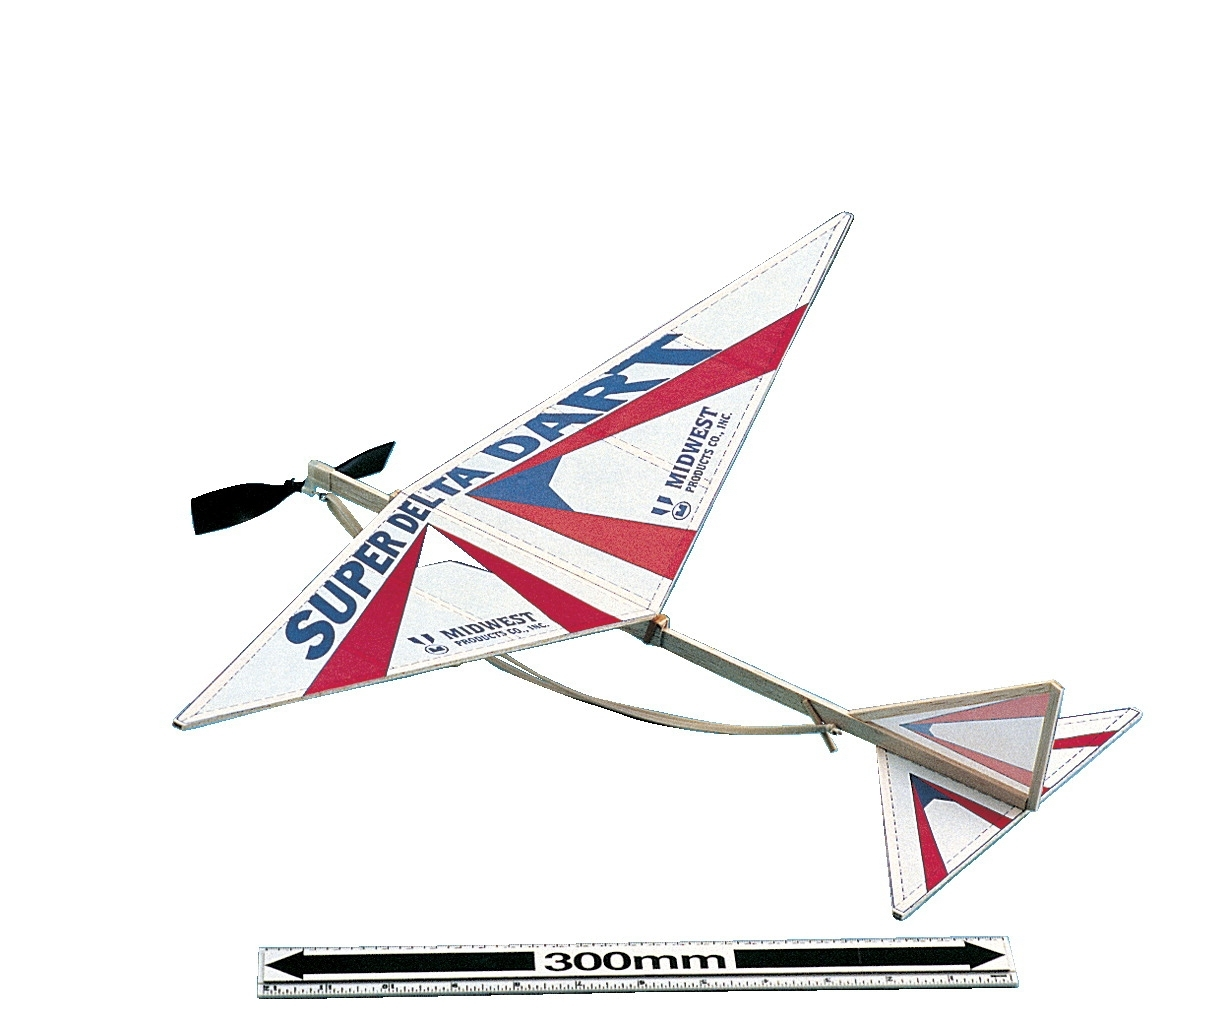 Learning: Science Physics Projects Lessons & Supplies Toy Planes & Rocketry Supplies - 592590 - Frey Scientific Super Delta Dart Kit 592590